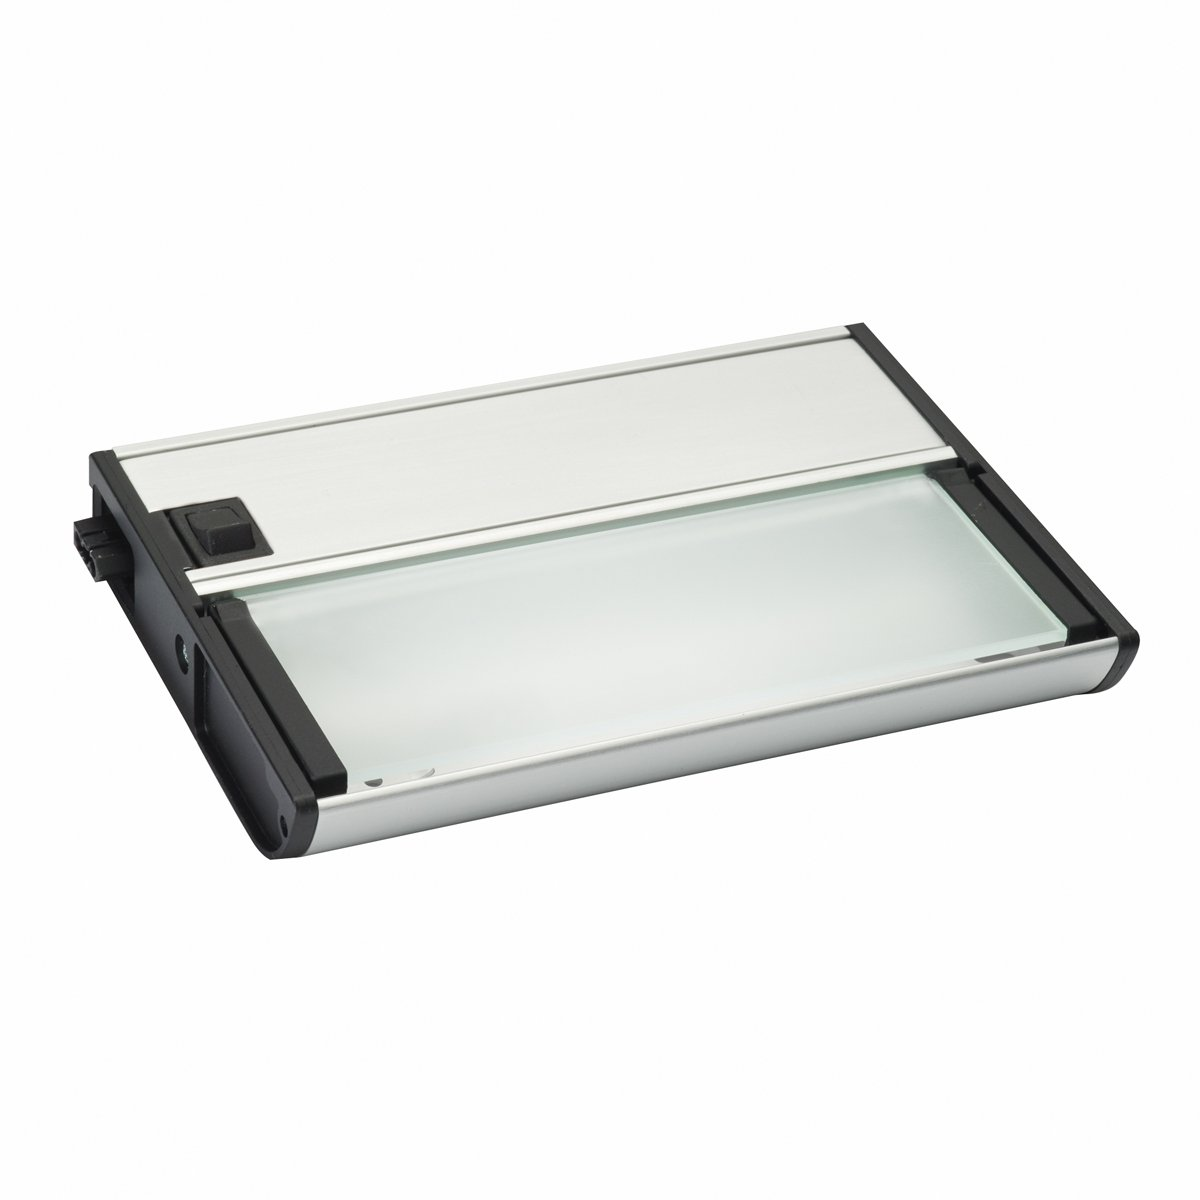 Amazon.com: 10565BRZ TaskWork Modular 7IN 1LT 12V Xenon Undercabinet Light  (Fixture Only), Bronze Finish with Frosted Glass Diffuser: Home Improvement - Amazon.com: 10565BRZ TaskWork Modular 7IN 1LT 12V Xenon